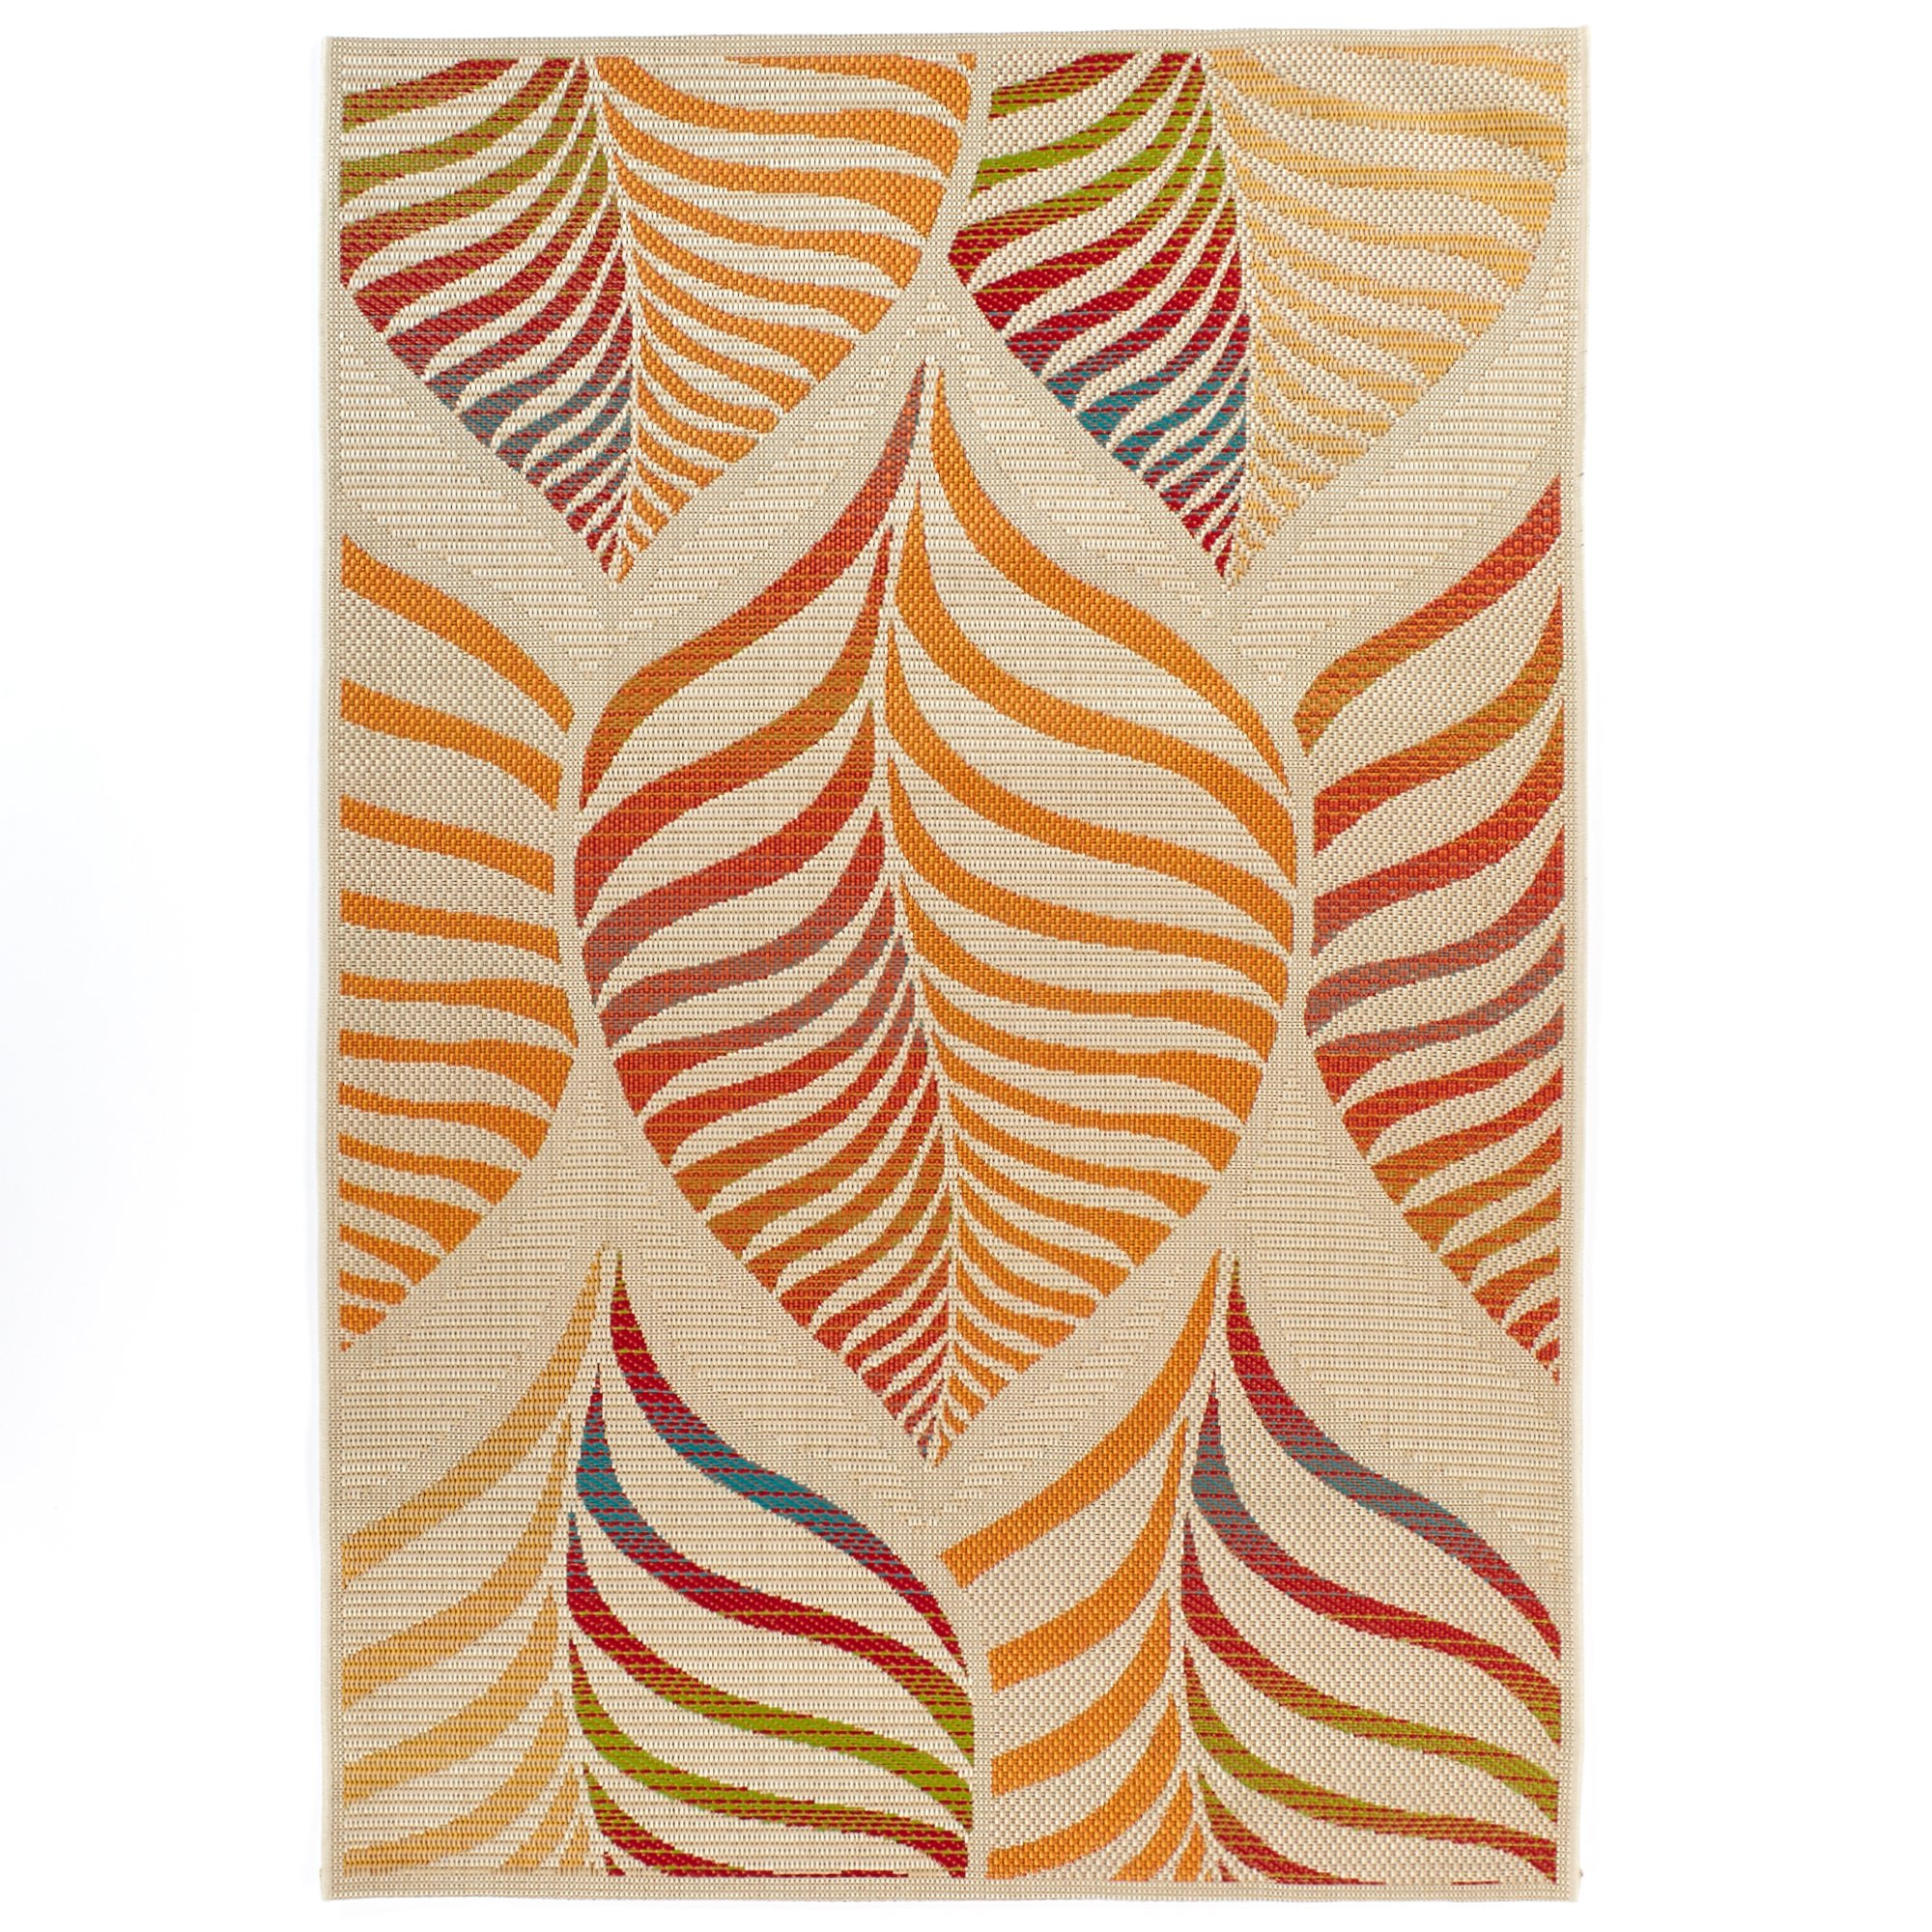 Carpet Art Deco Bellaire Collection Indoor Outdoor Rug, 5'3'' x7'5, Beige/Orange/Red